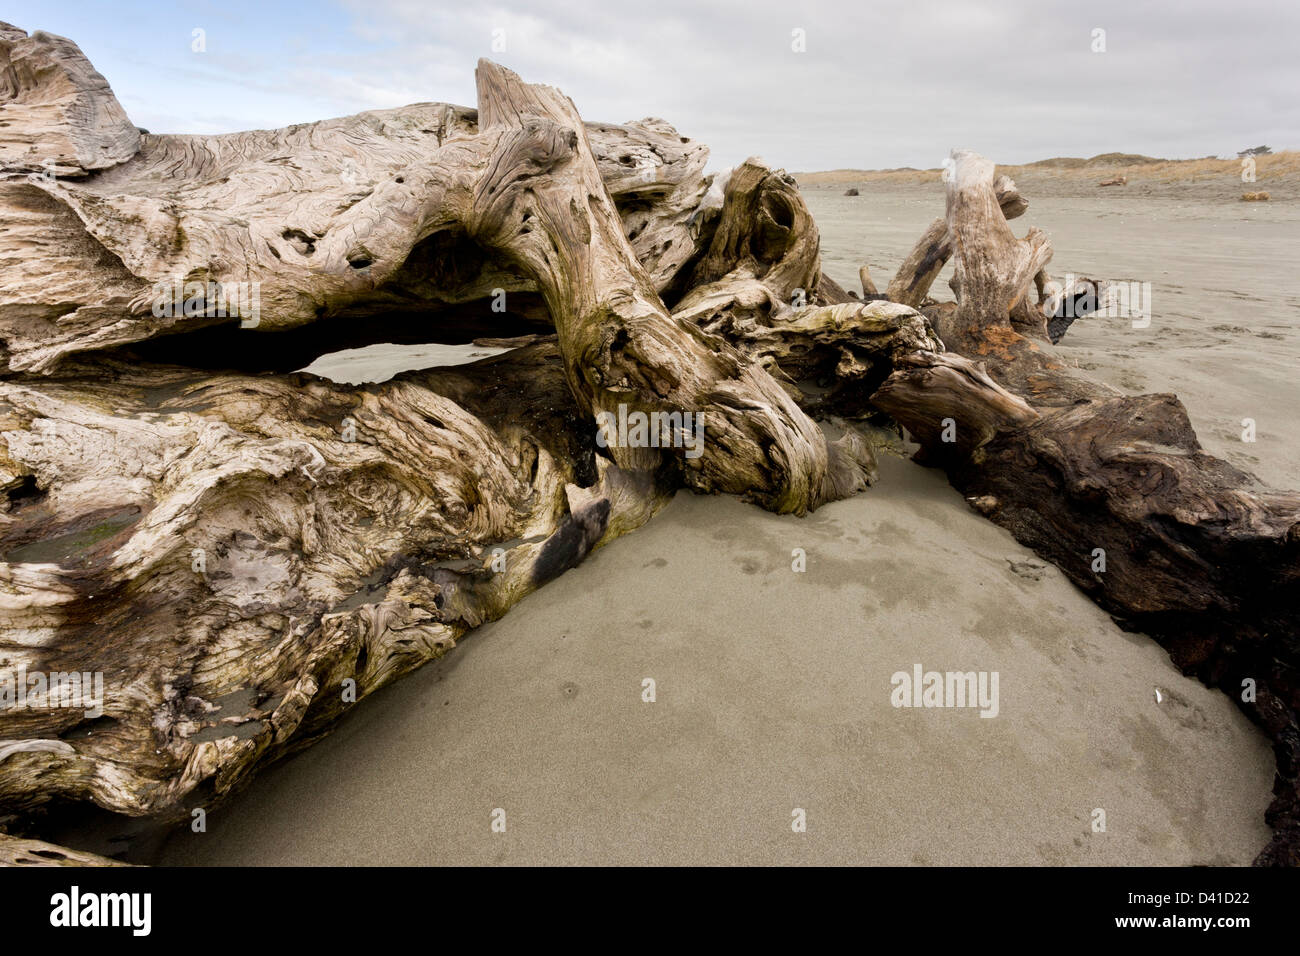 Washed up giant driftwood, Coast Redwood trunk, on pacific sandy beach at Arcata, California, USA - Stock Image